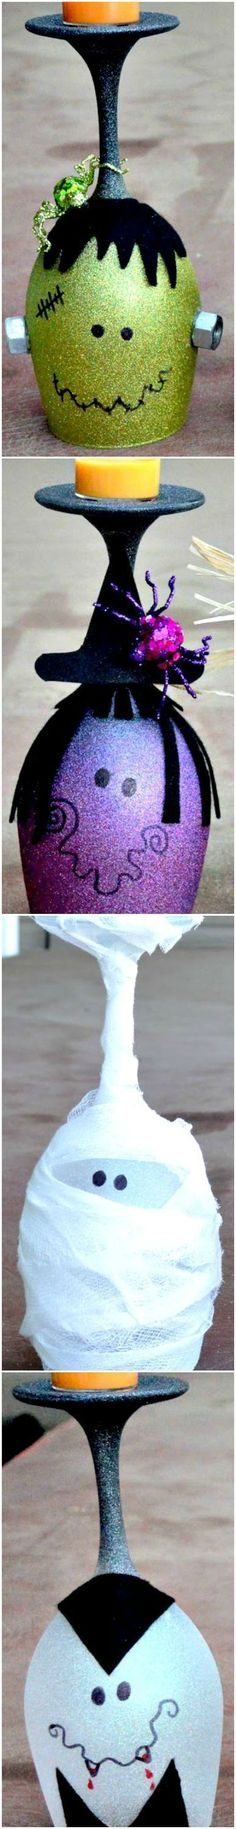 How To Make Halloween Wine Glasses (Candle Holders)